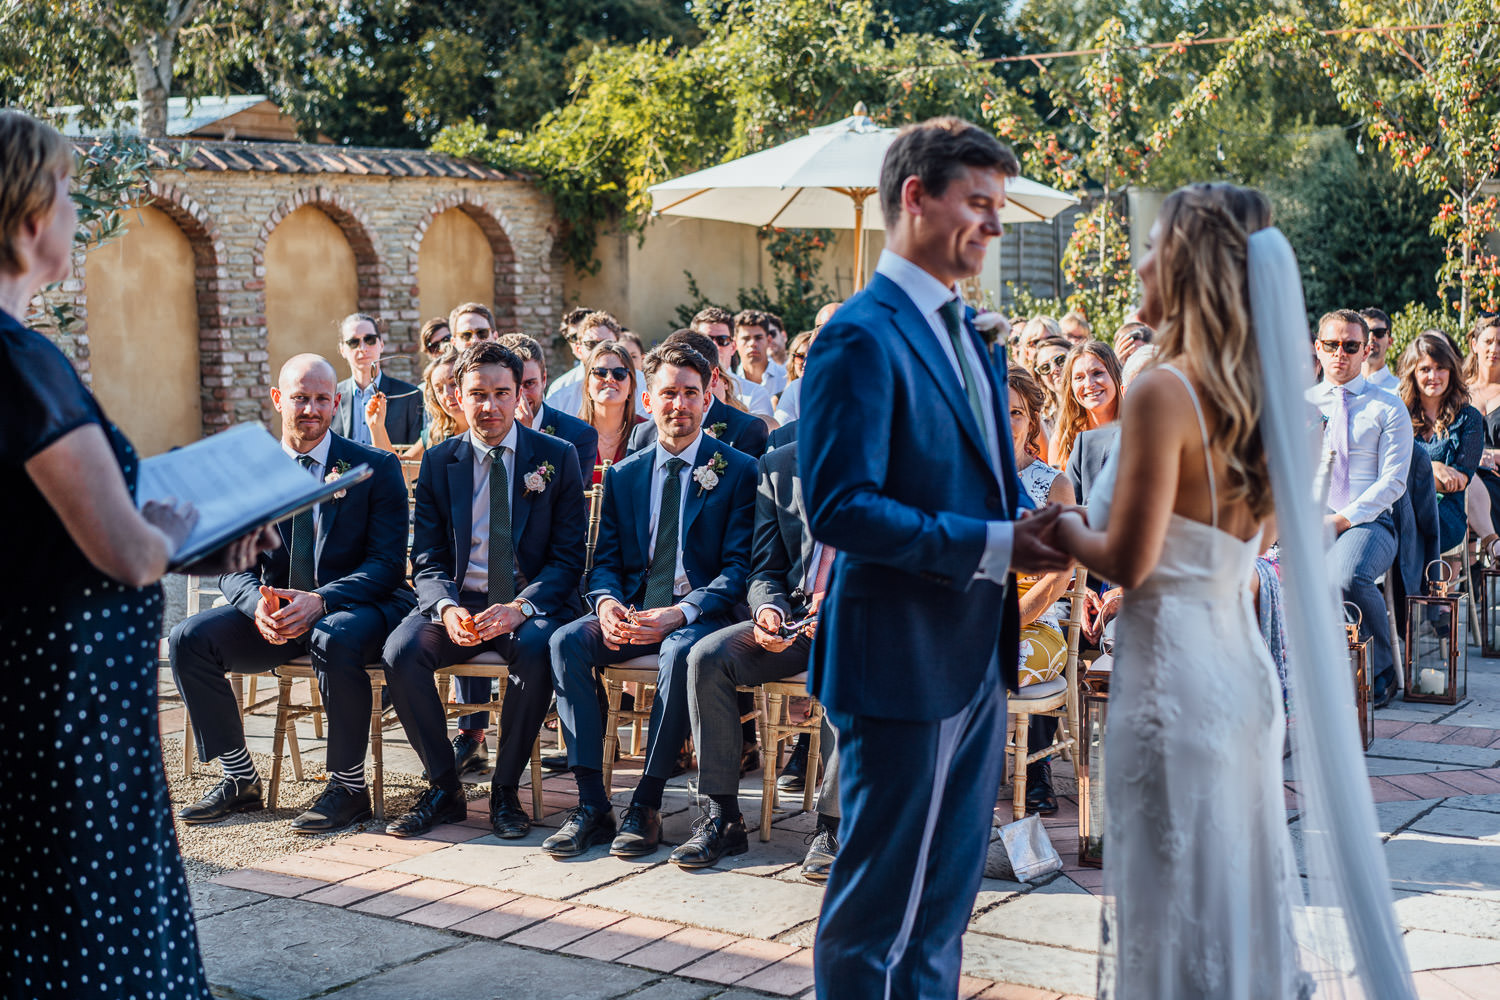 wedding ceremony in oxleaze barn wedding by cotswolds wedding photographer the shannons photography